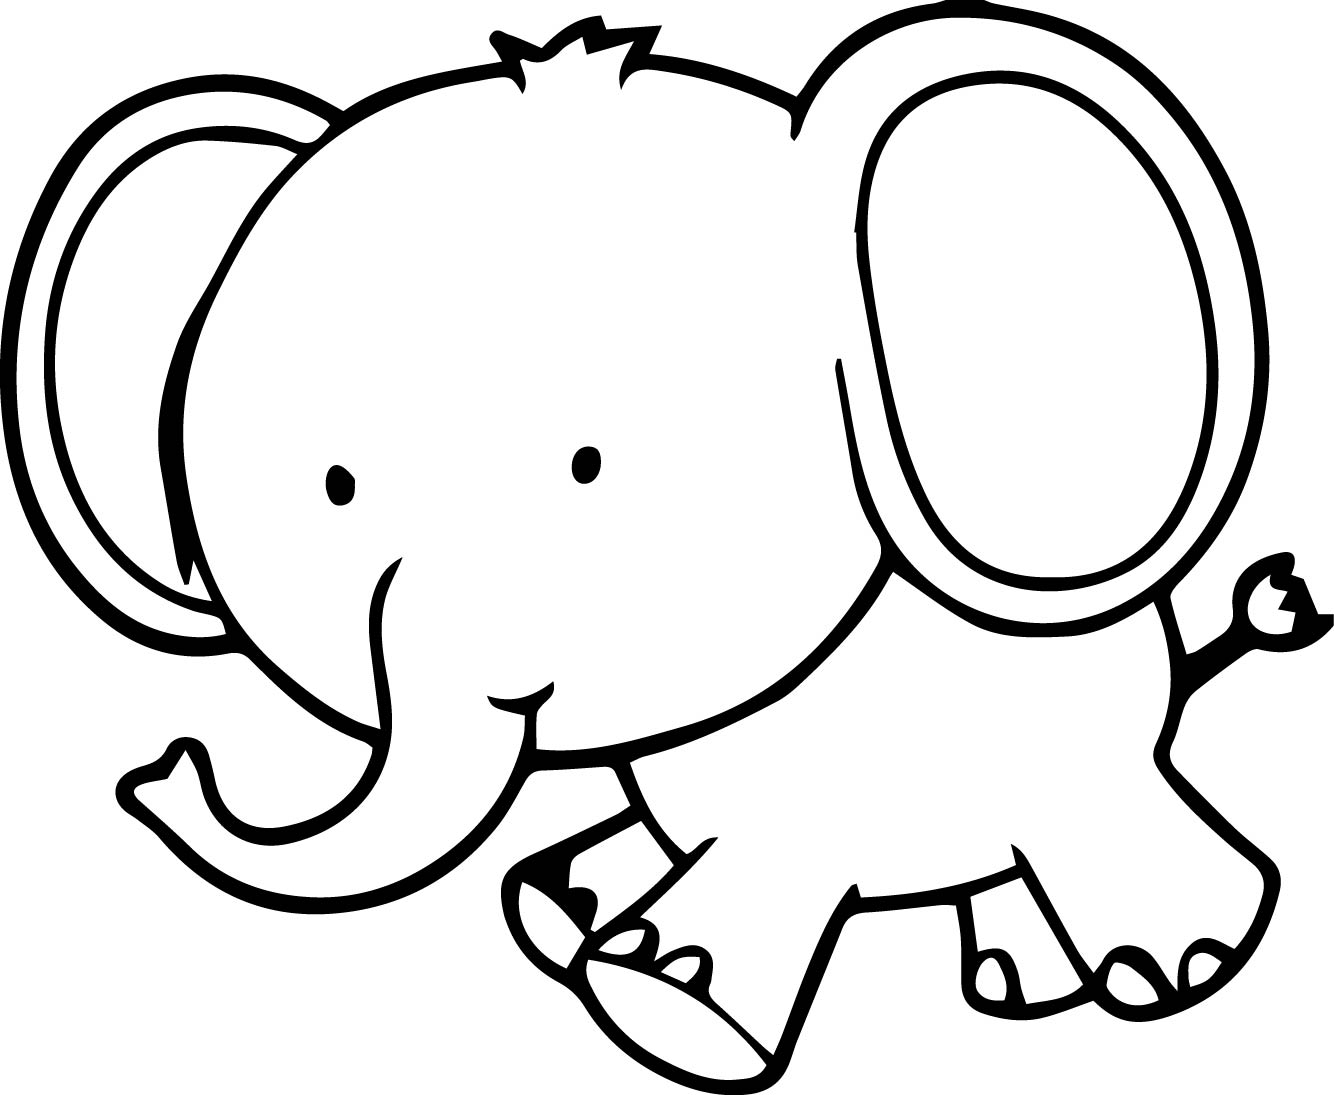 Coloring Pages Coloring Page Of Elephant elephant coloring page eassume com bath az pages